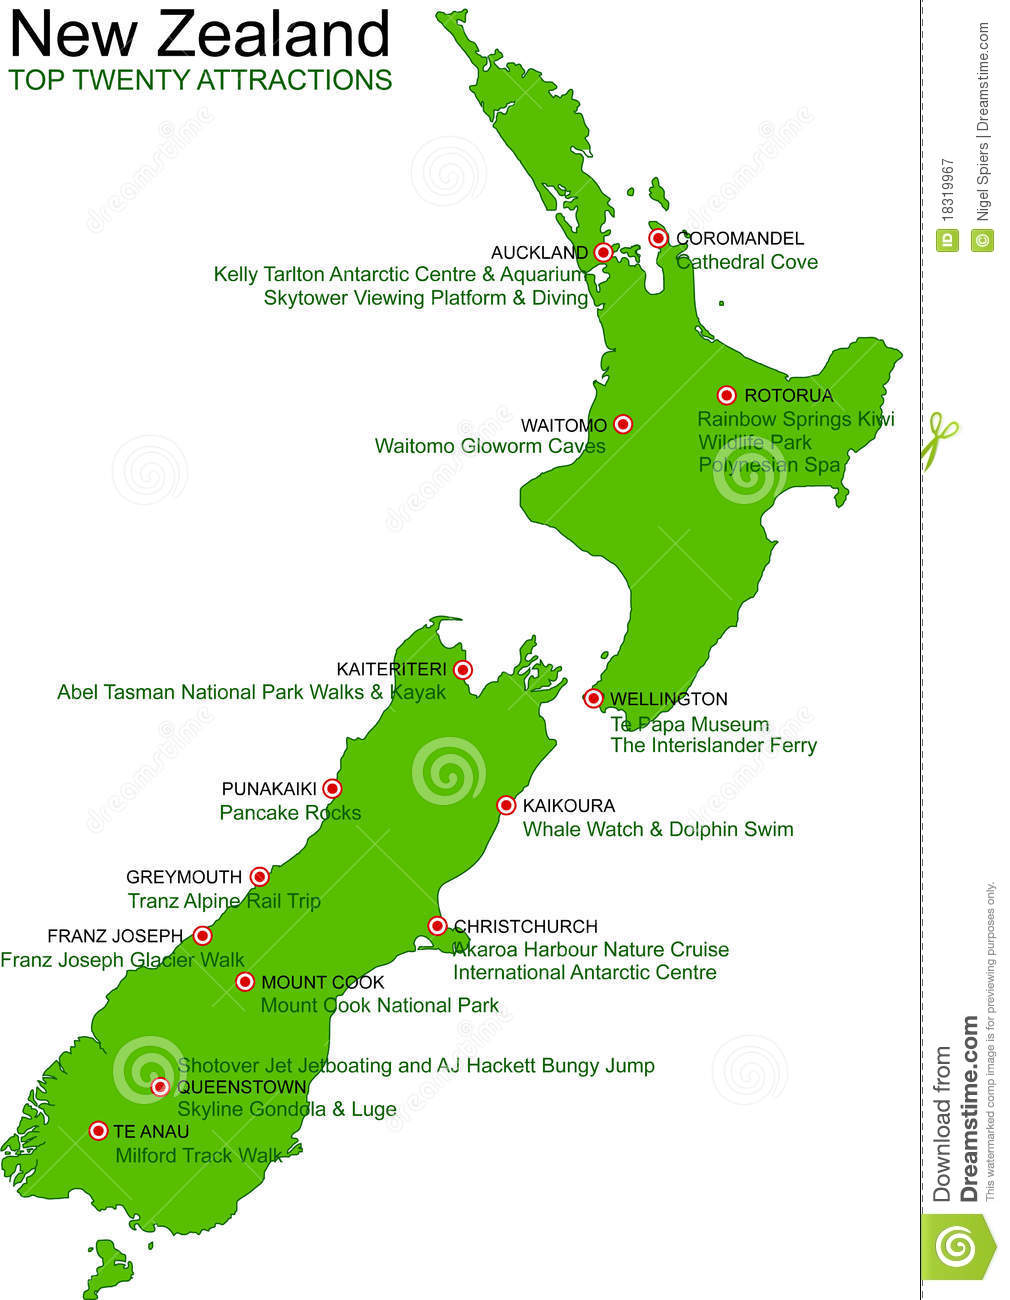 A Detailed Green Map Of New Zealand On A White Background. Includes Top  Twenty NZ Attractions, Things To Do And Place Names. Vector Illustration  May Be ...